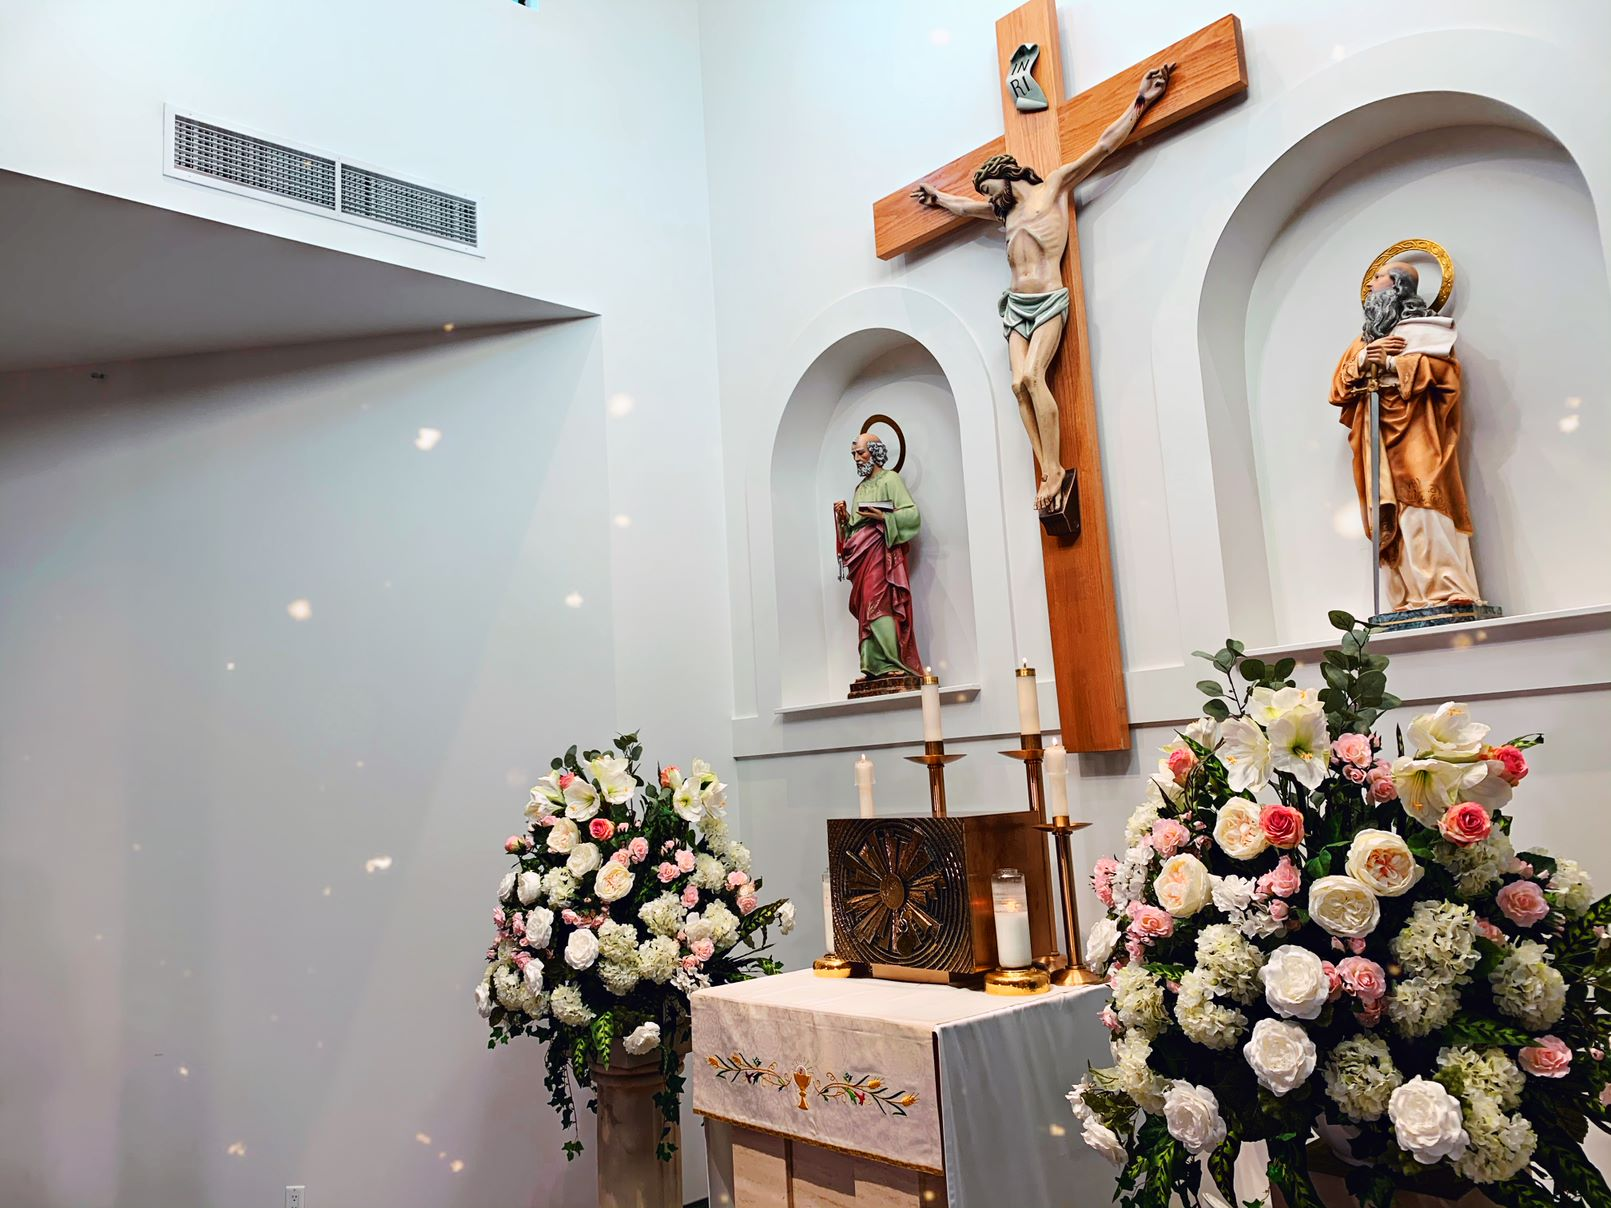 This is a picture of the crucifix by the Altar at Sts. Peter and Paul